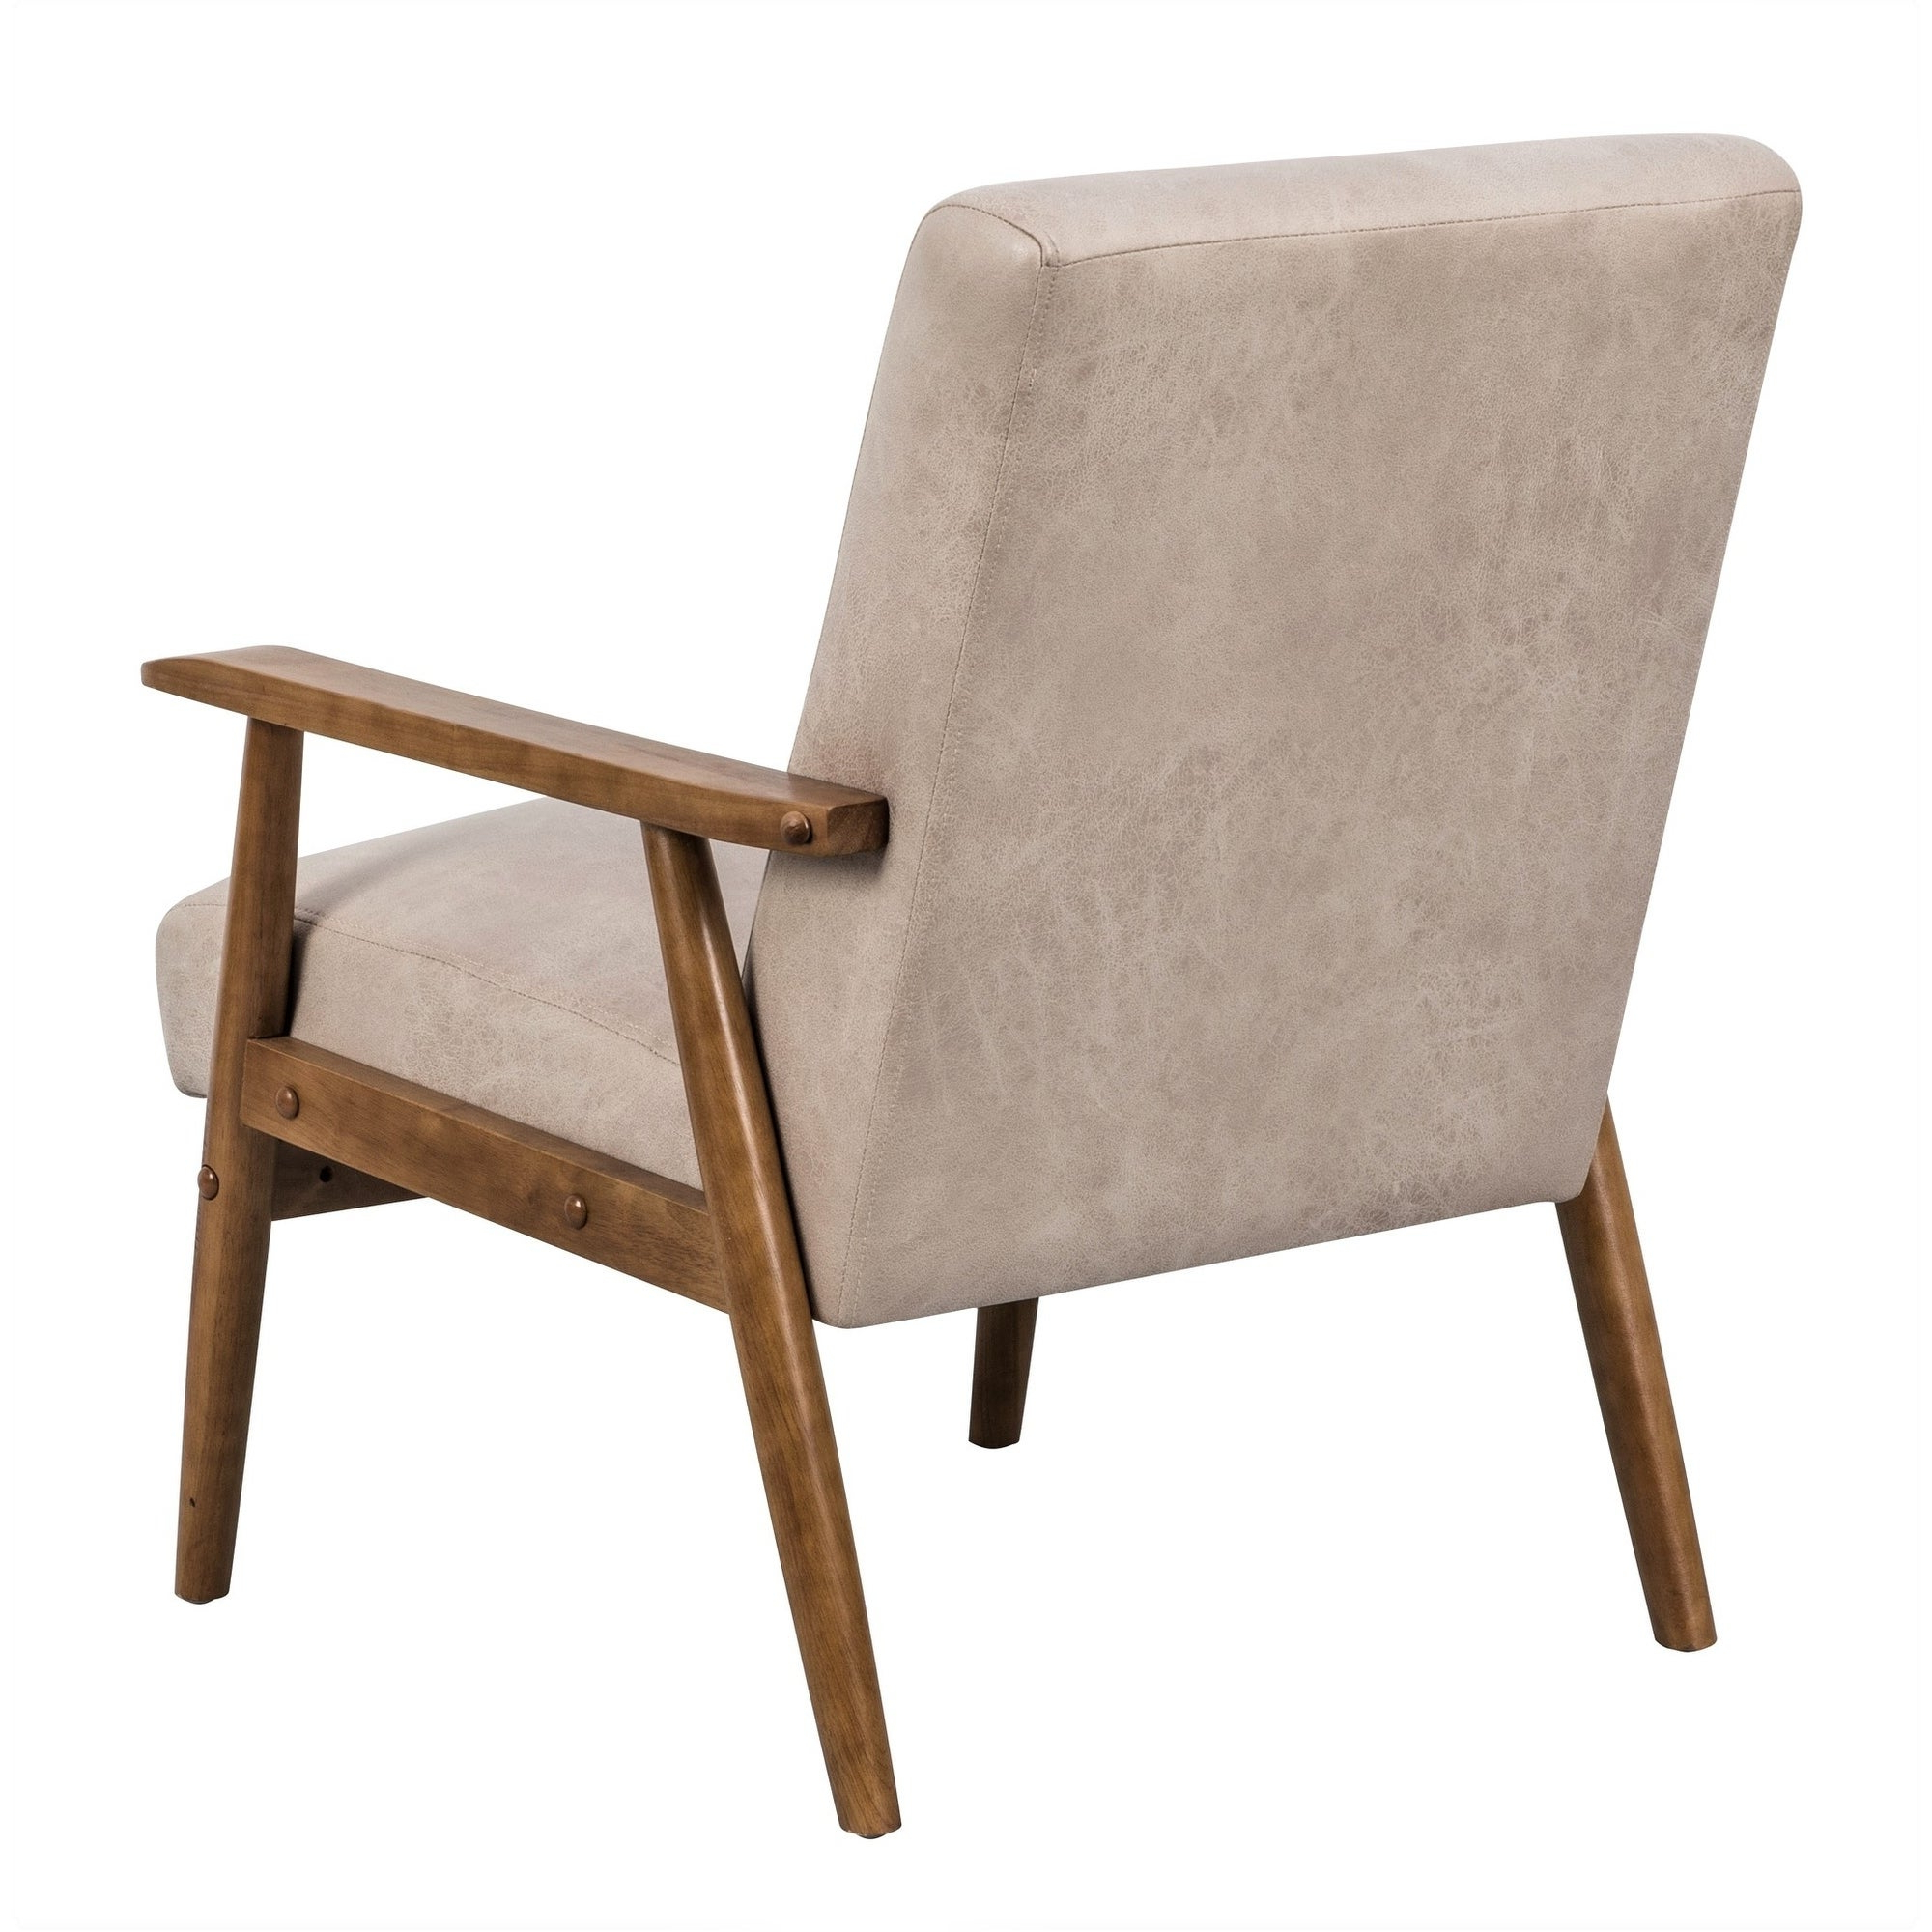 """Beachwood Arm Chairs For Best And Newest Beachwood 21"""" Arm Chair (View 3 of 20)"""